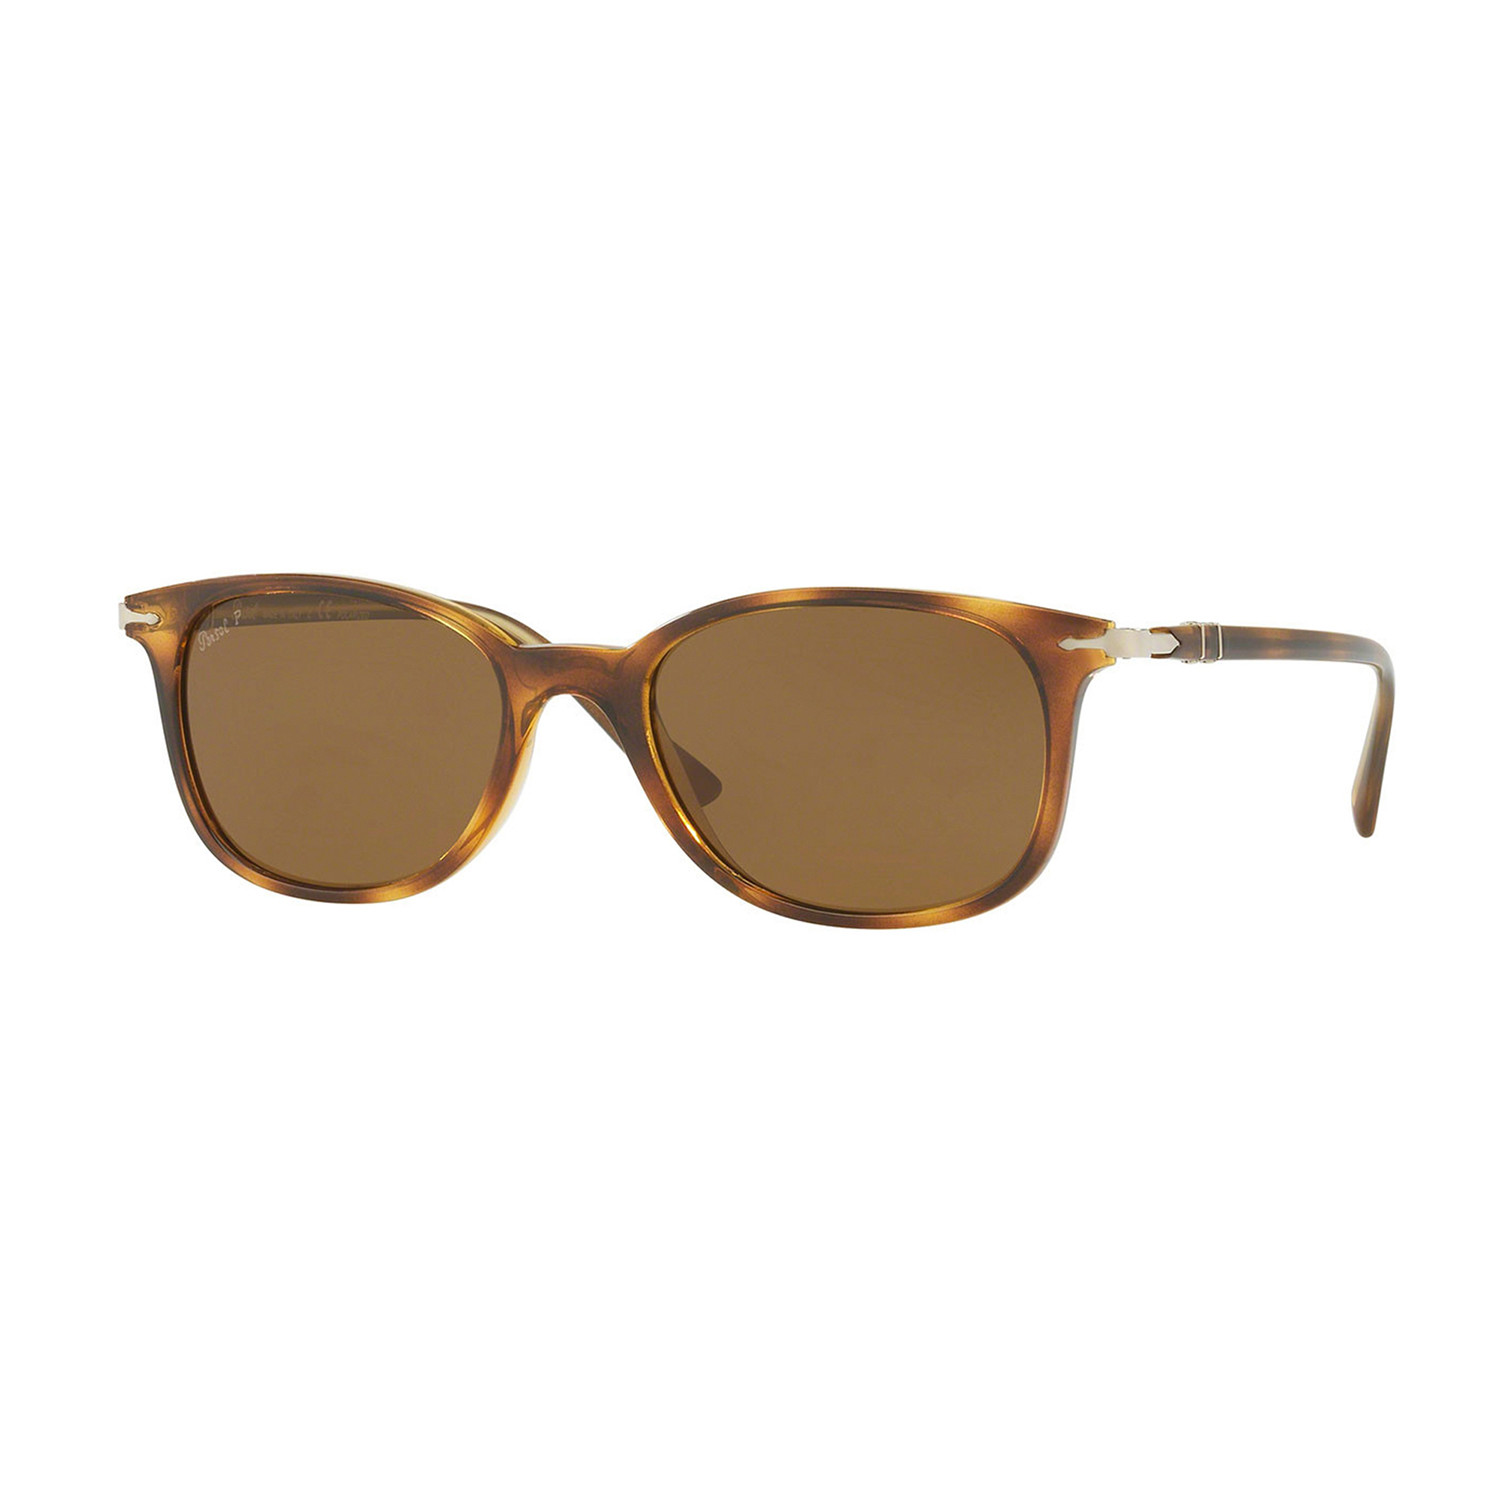 9aead67e05b58 Bad416c430509499d9f70194005194e7 medium. Persol Polarized Classic Sunglasses     Havana